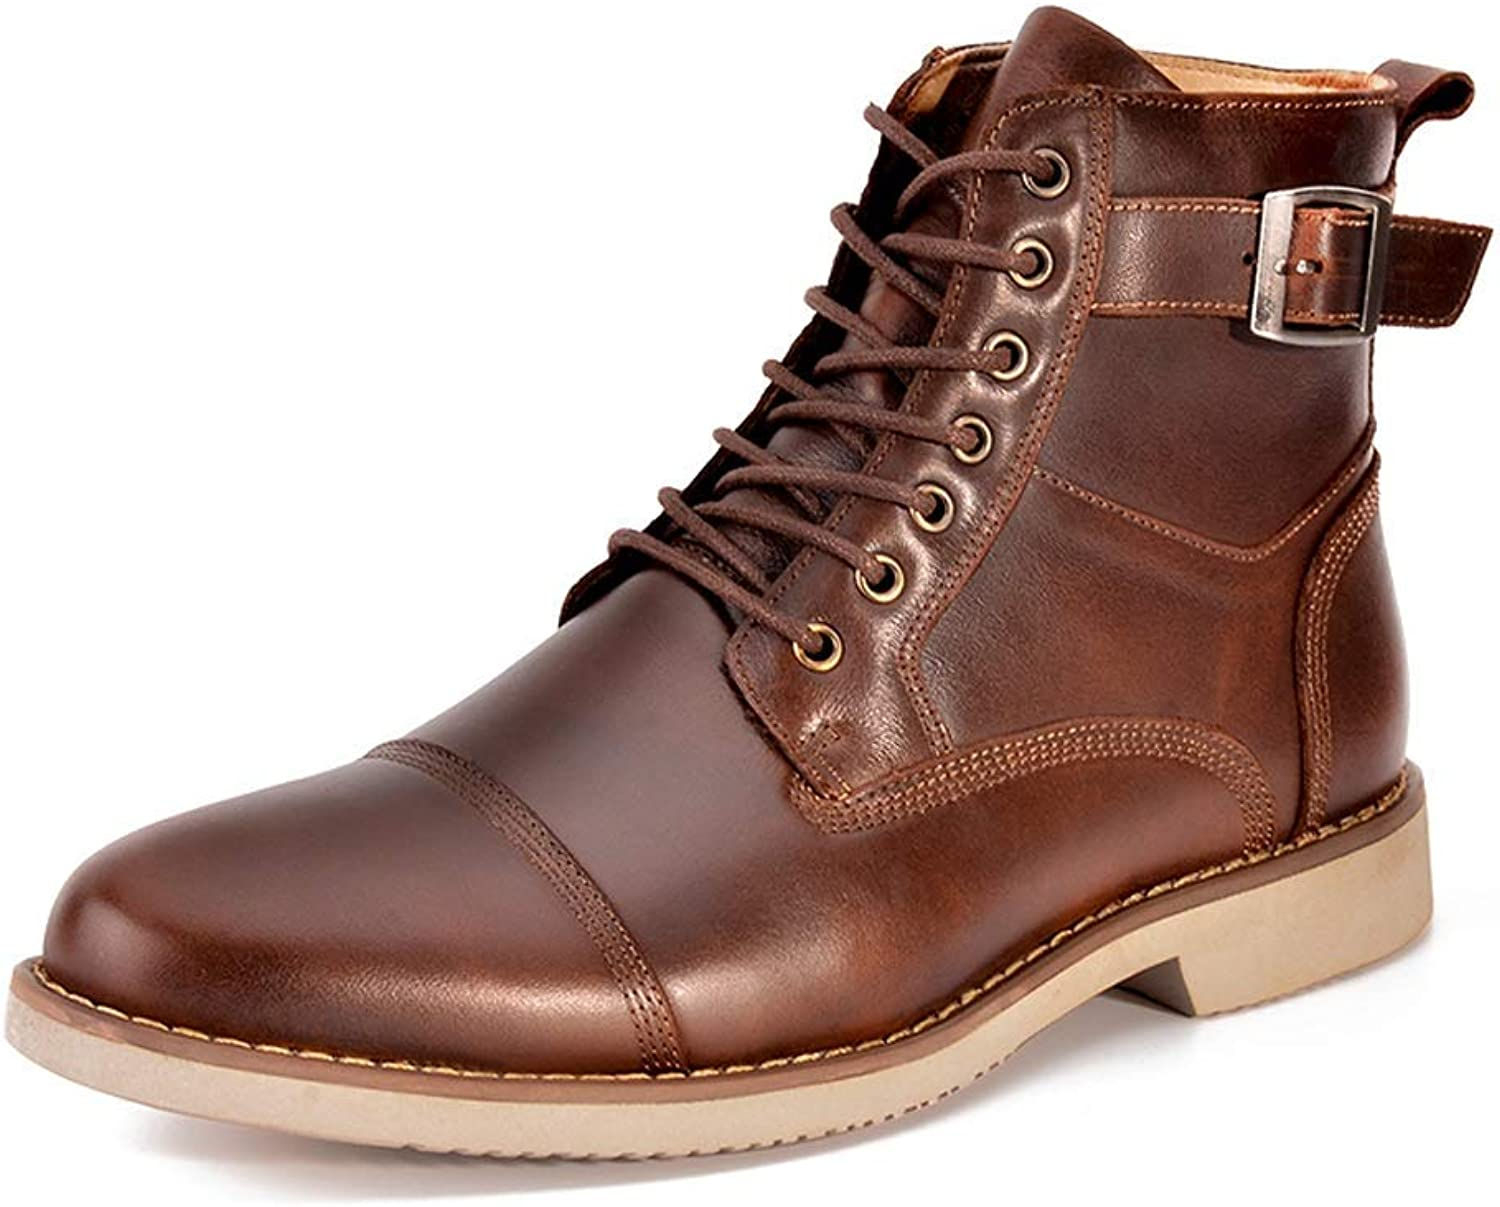 MON5F HOME High-top Men's shoes Leather Strap With European And American Leather Boots Men's Martin Boots Casual Leather Tooling Boots (color   Brown, Size   39)